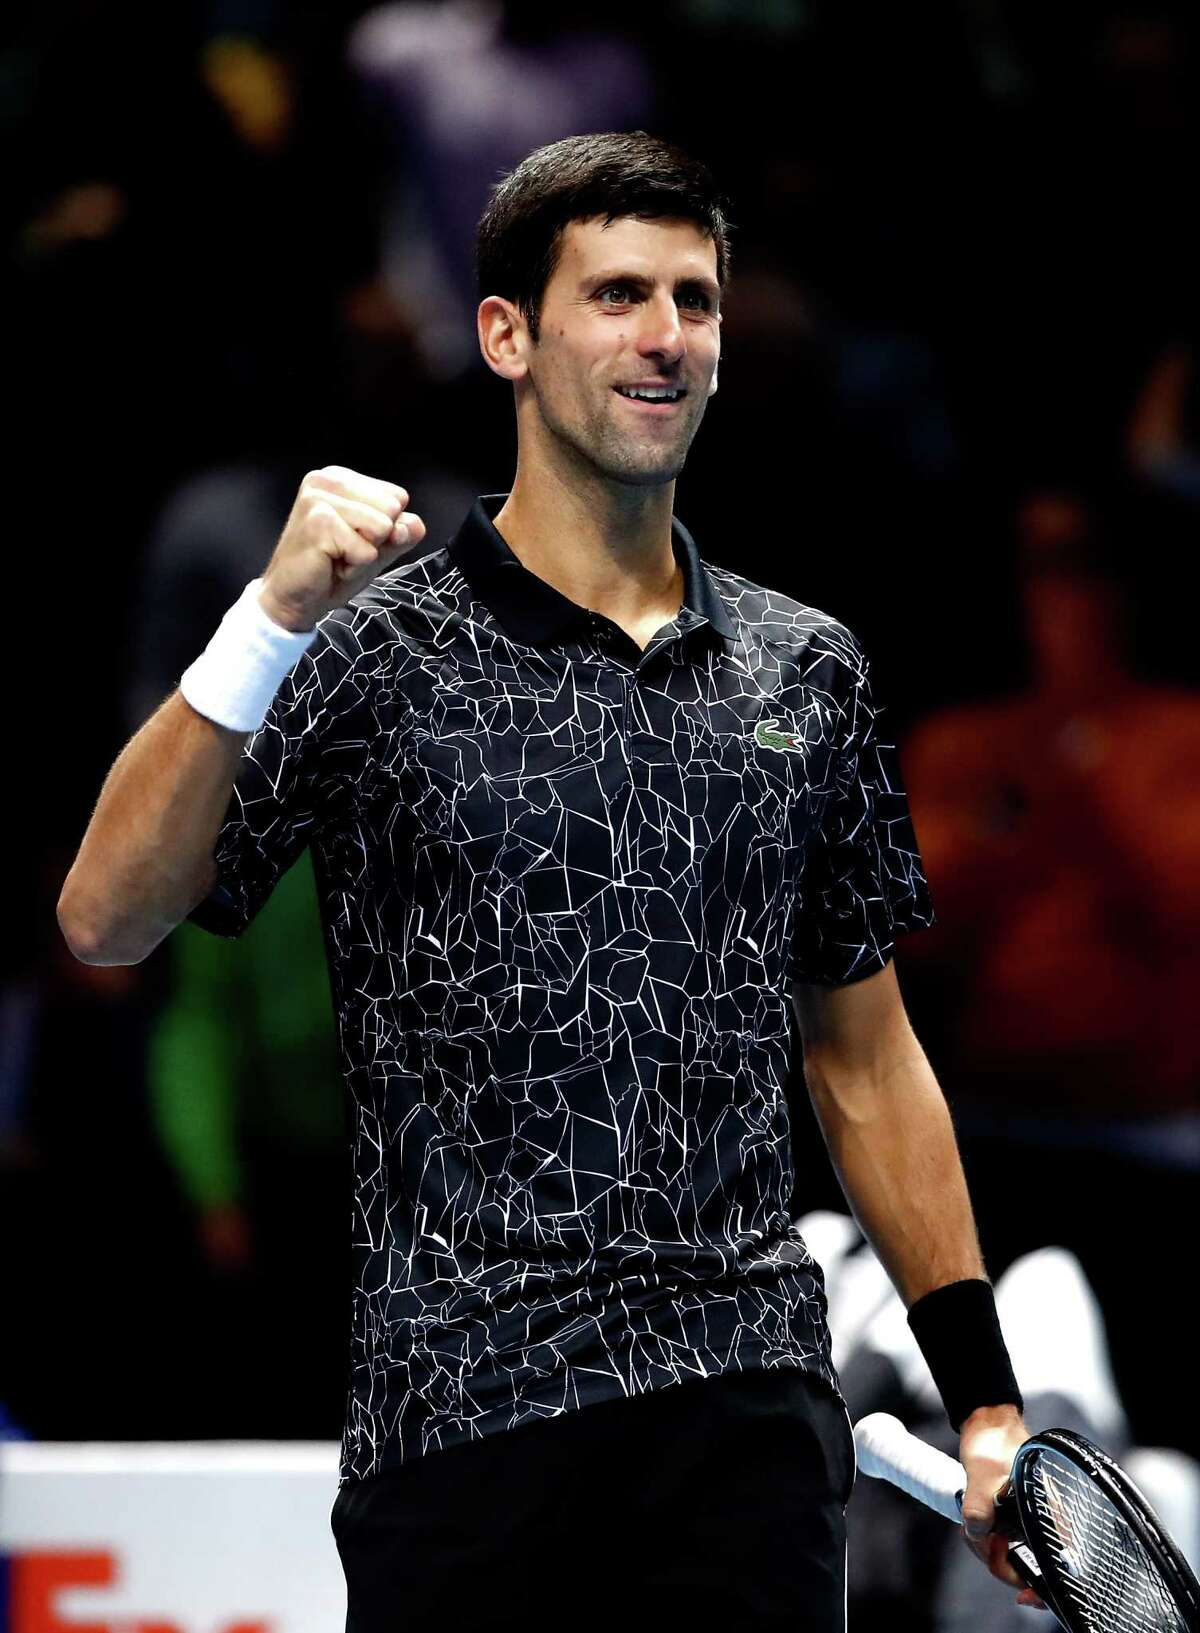 LONDON, ENGLAND - NOVEMBER 12: Novak Djokovic of Serbia celebrates victory during his singles round robin match against John Isner of The United States during Day Two of the Nitto ATP World Tour Finals at The O2 Arena on November 12, 2018 in London, England. (Photo by Julian Finney/Getty Images)